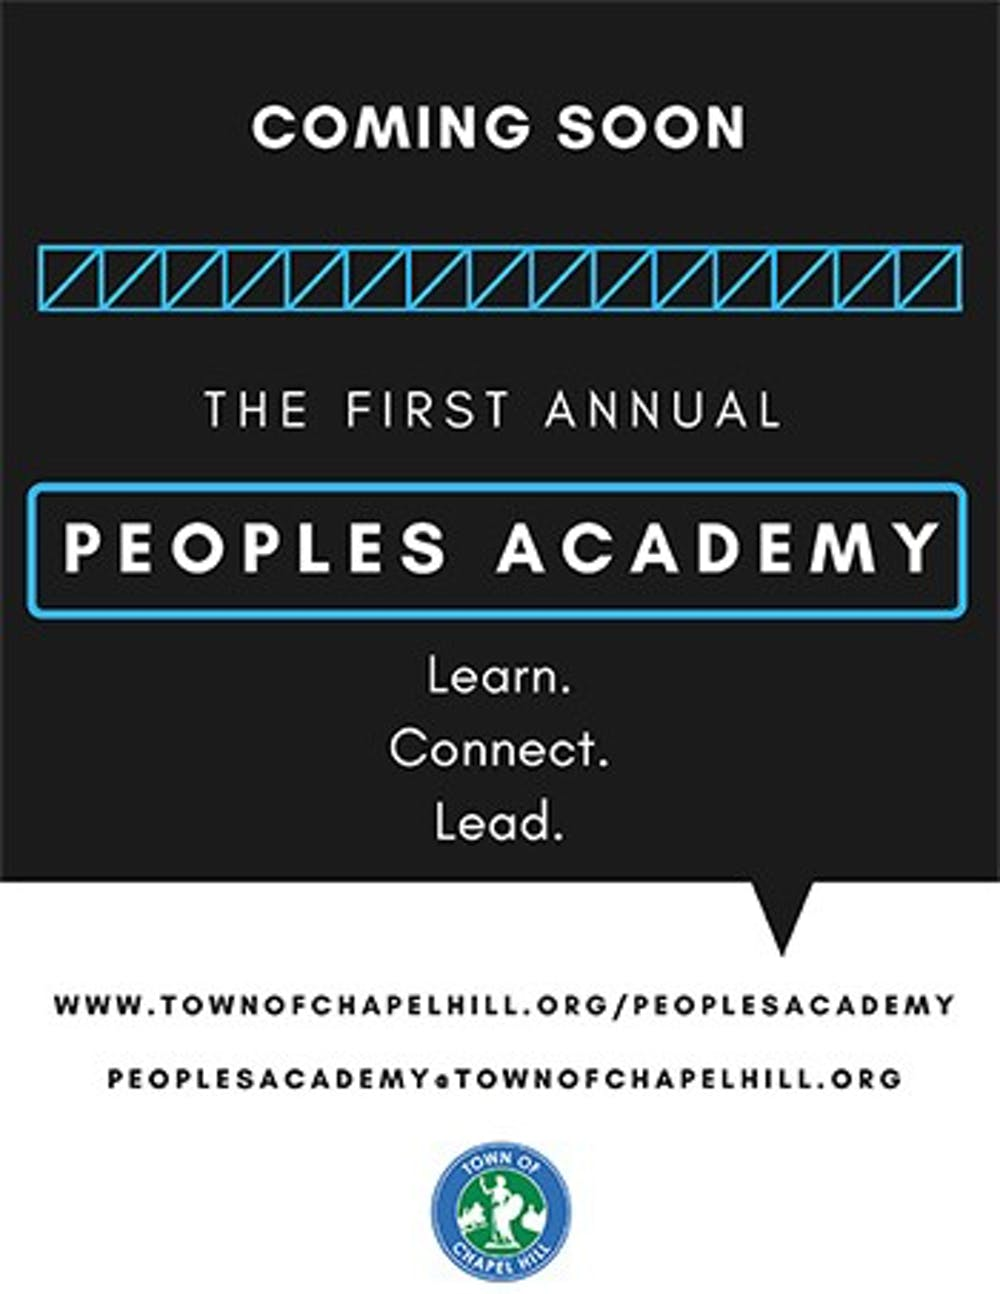 Chapel Hill encourages civic engagement with the Peoples Academy